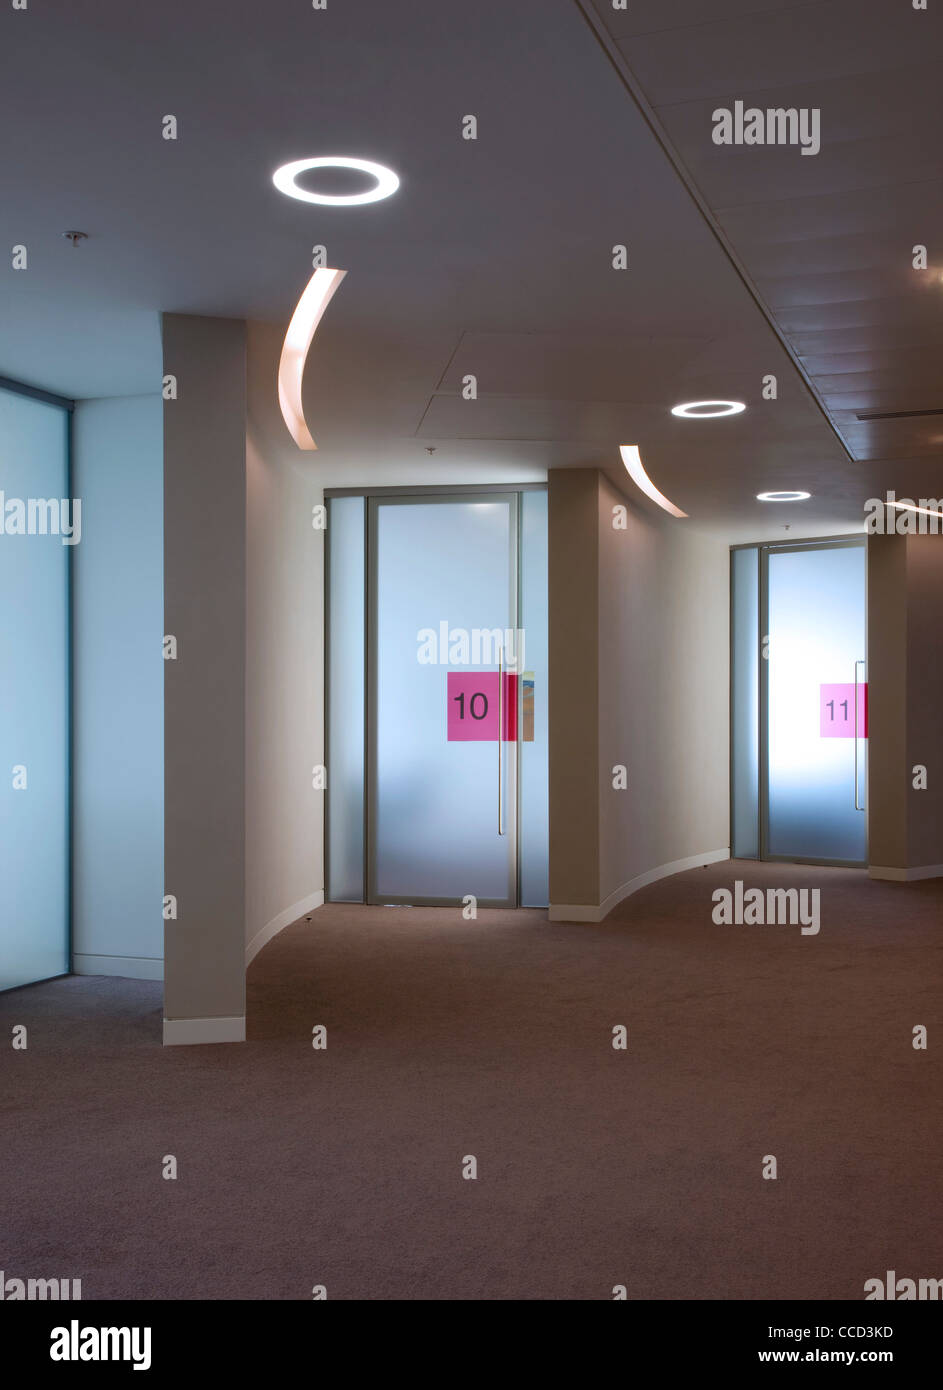 Glass Doors Frosted Stockfotos & Glass Doors Frosted Bilder - Alamy